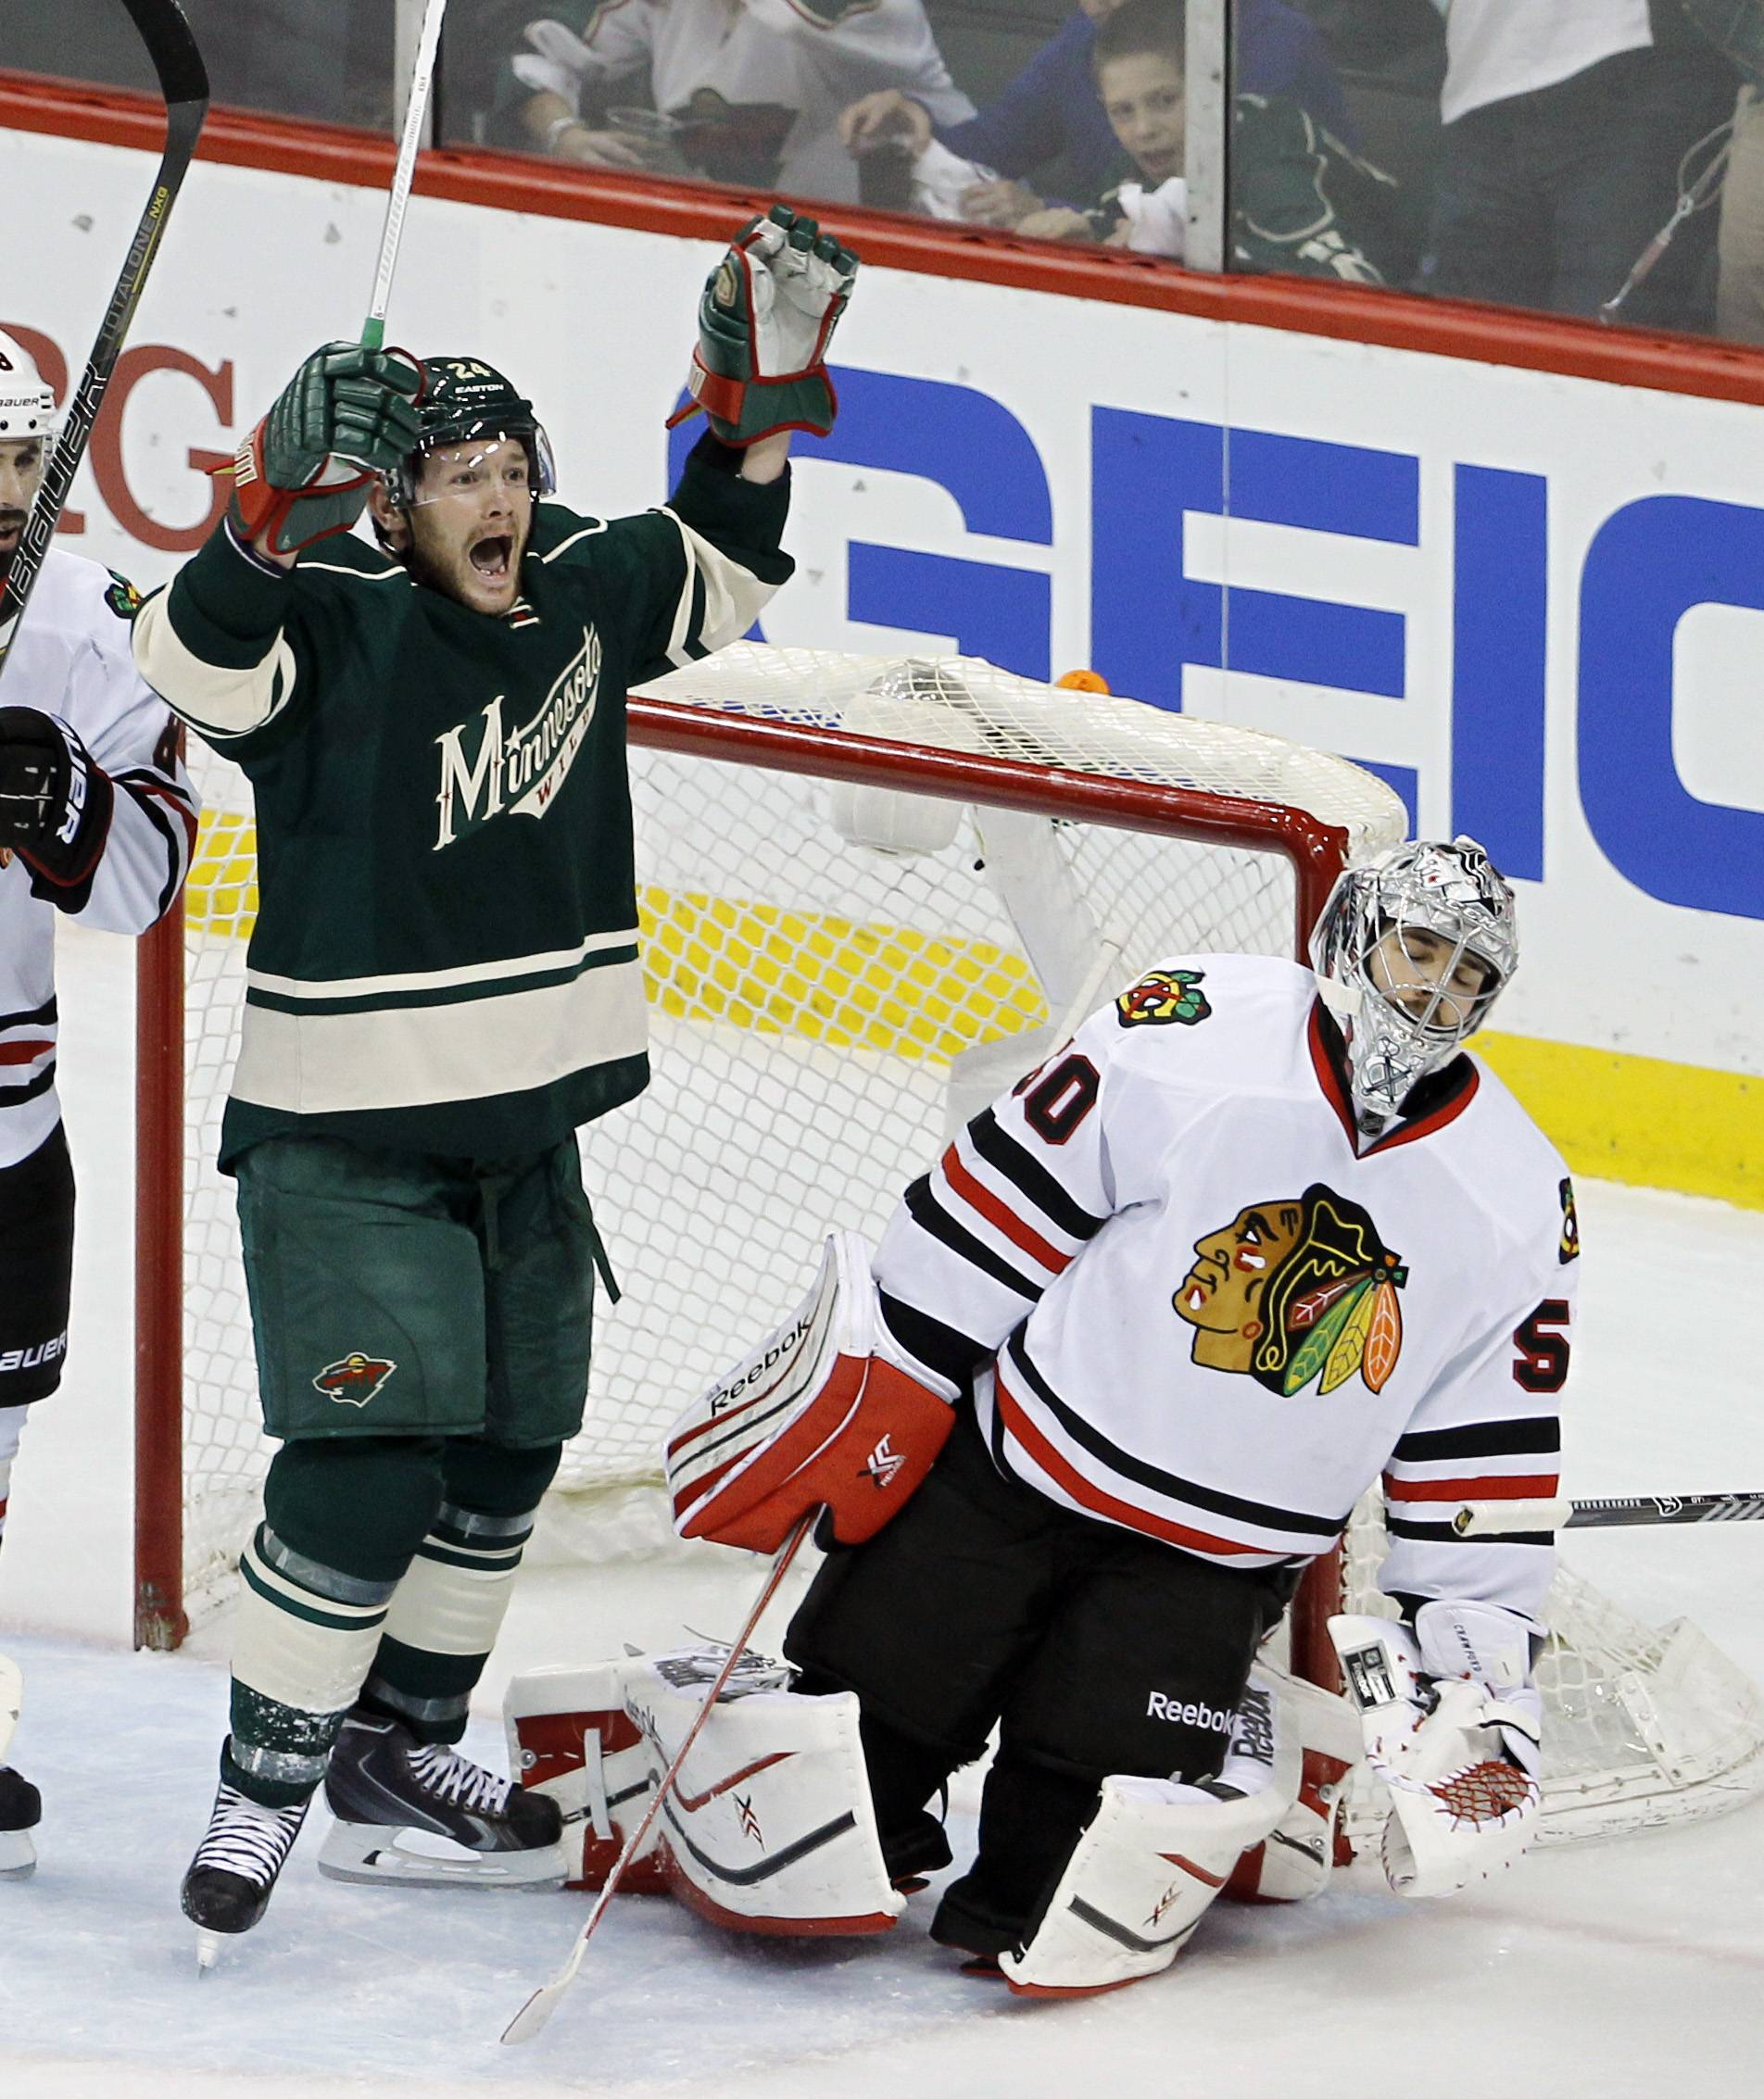 Minnesota Wild left wing Matt Cooke, left, celebrates after Wild right wing Justin Fontaine scored on Chicago Blackhawks goalie Corey Crawford, right, during the first period of Game 4 of an NHL hockey second-round playoff series in St. Paul, Minn., Friday, May 9, 2014.